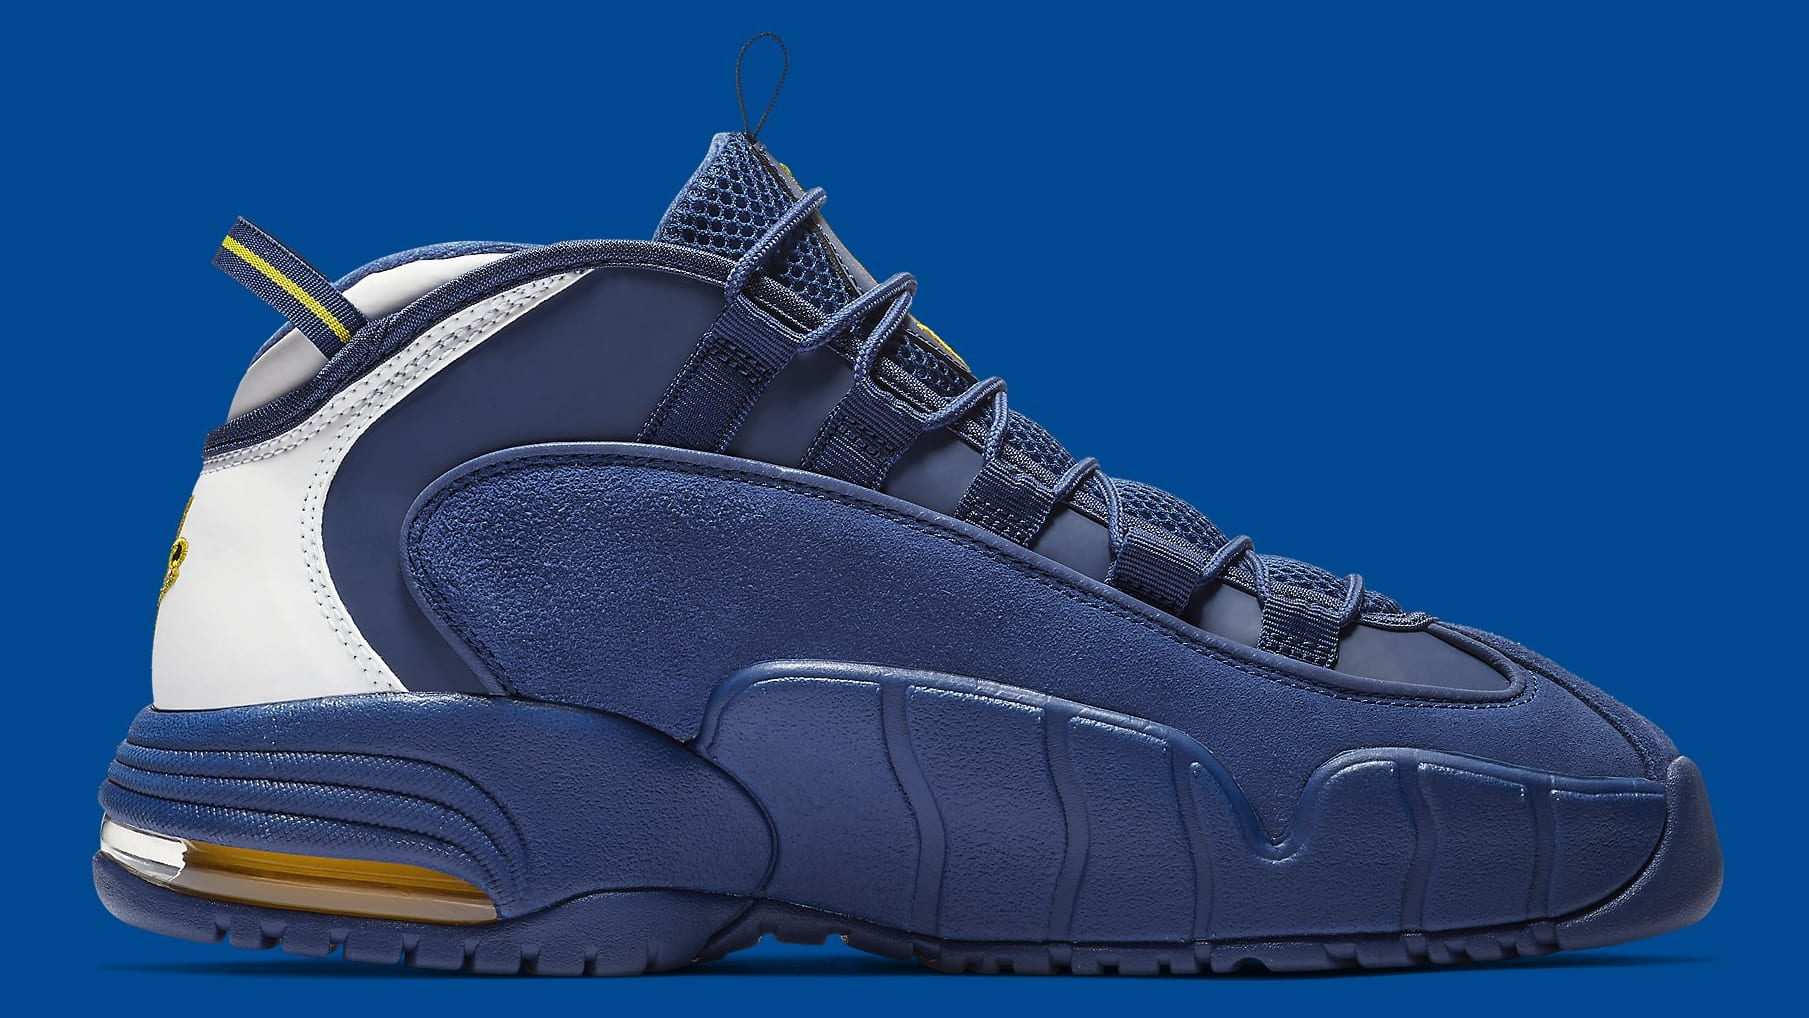 8634007616 Image via Nike Nike Air Max Penny 1 Warriors Release Date 685153-401 Medial